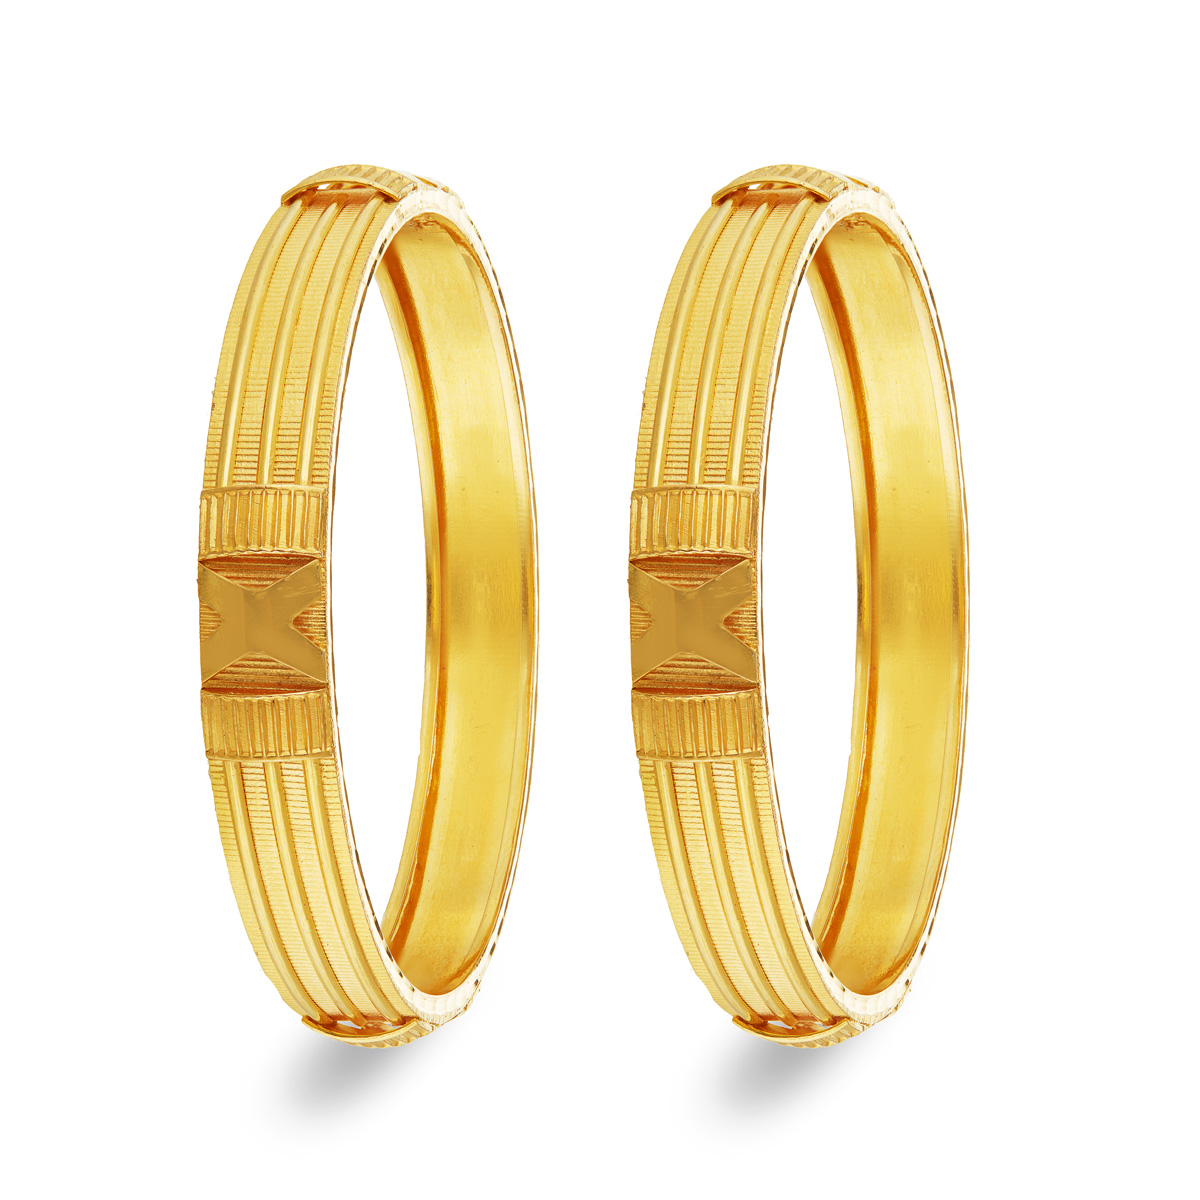 Solid Pair of Bangles